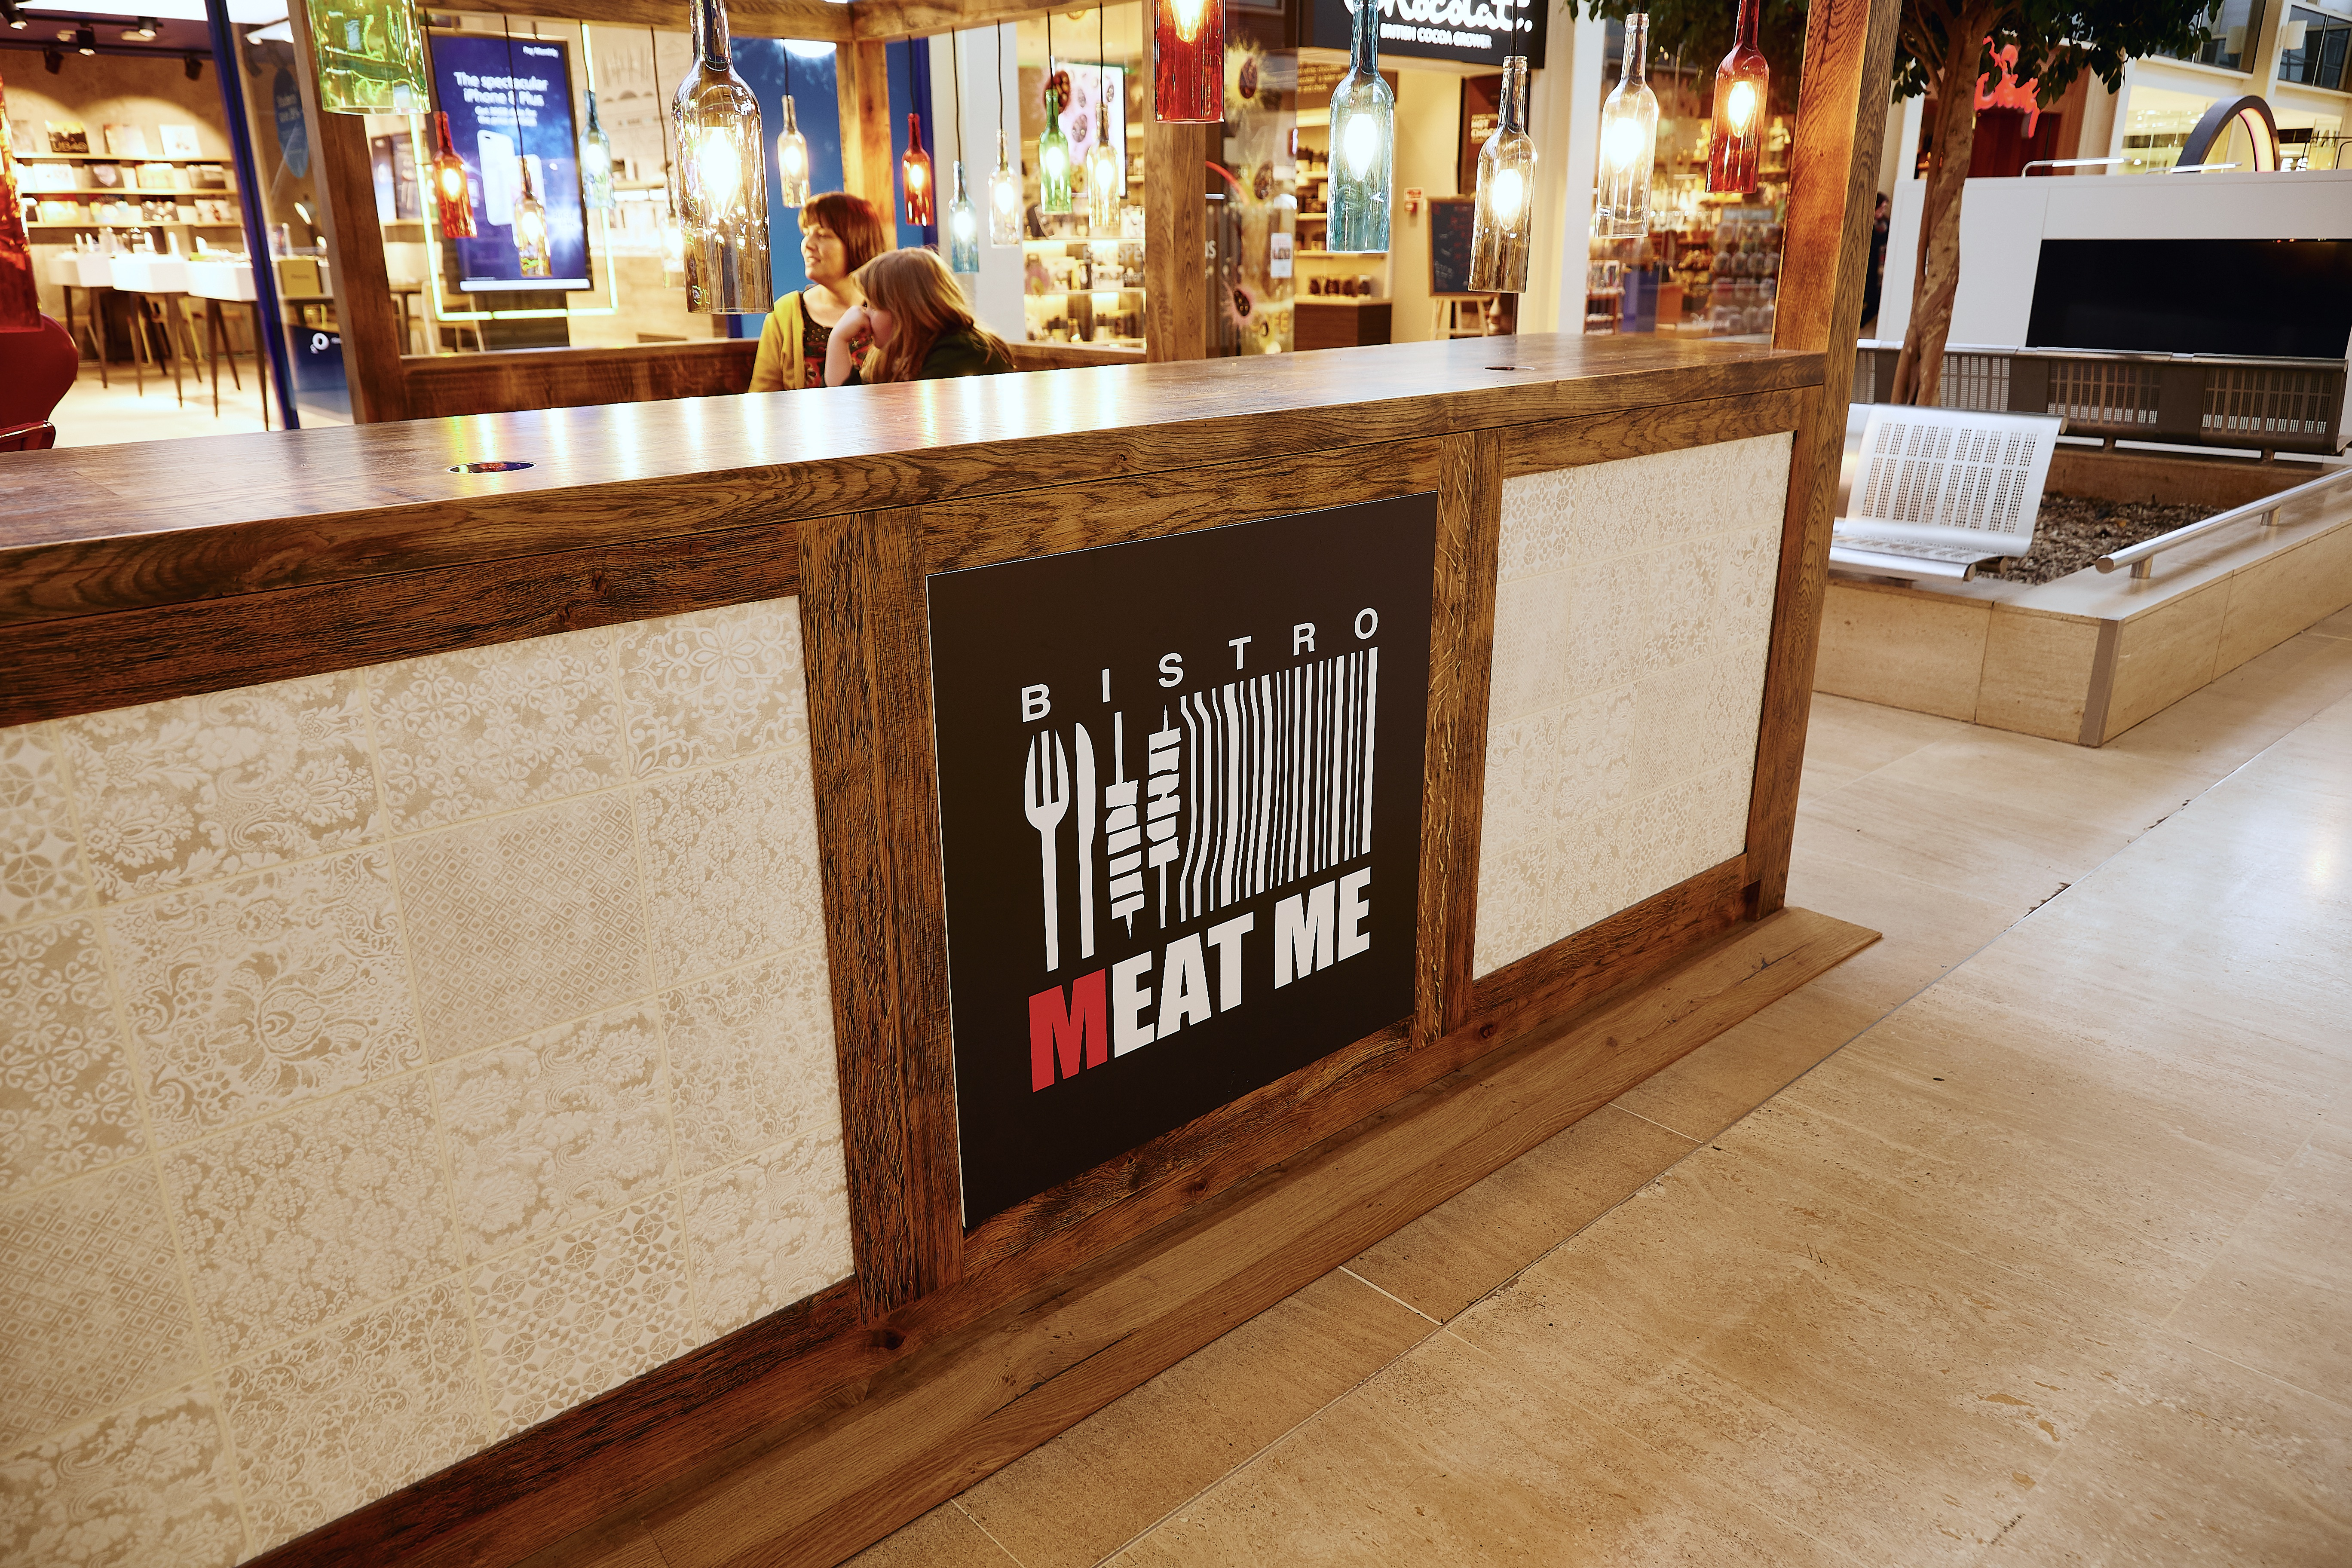 Branding board of Meat Me Bistro with tile and rustic wood surround